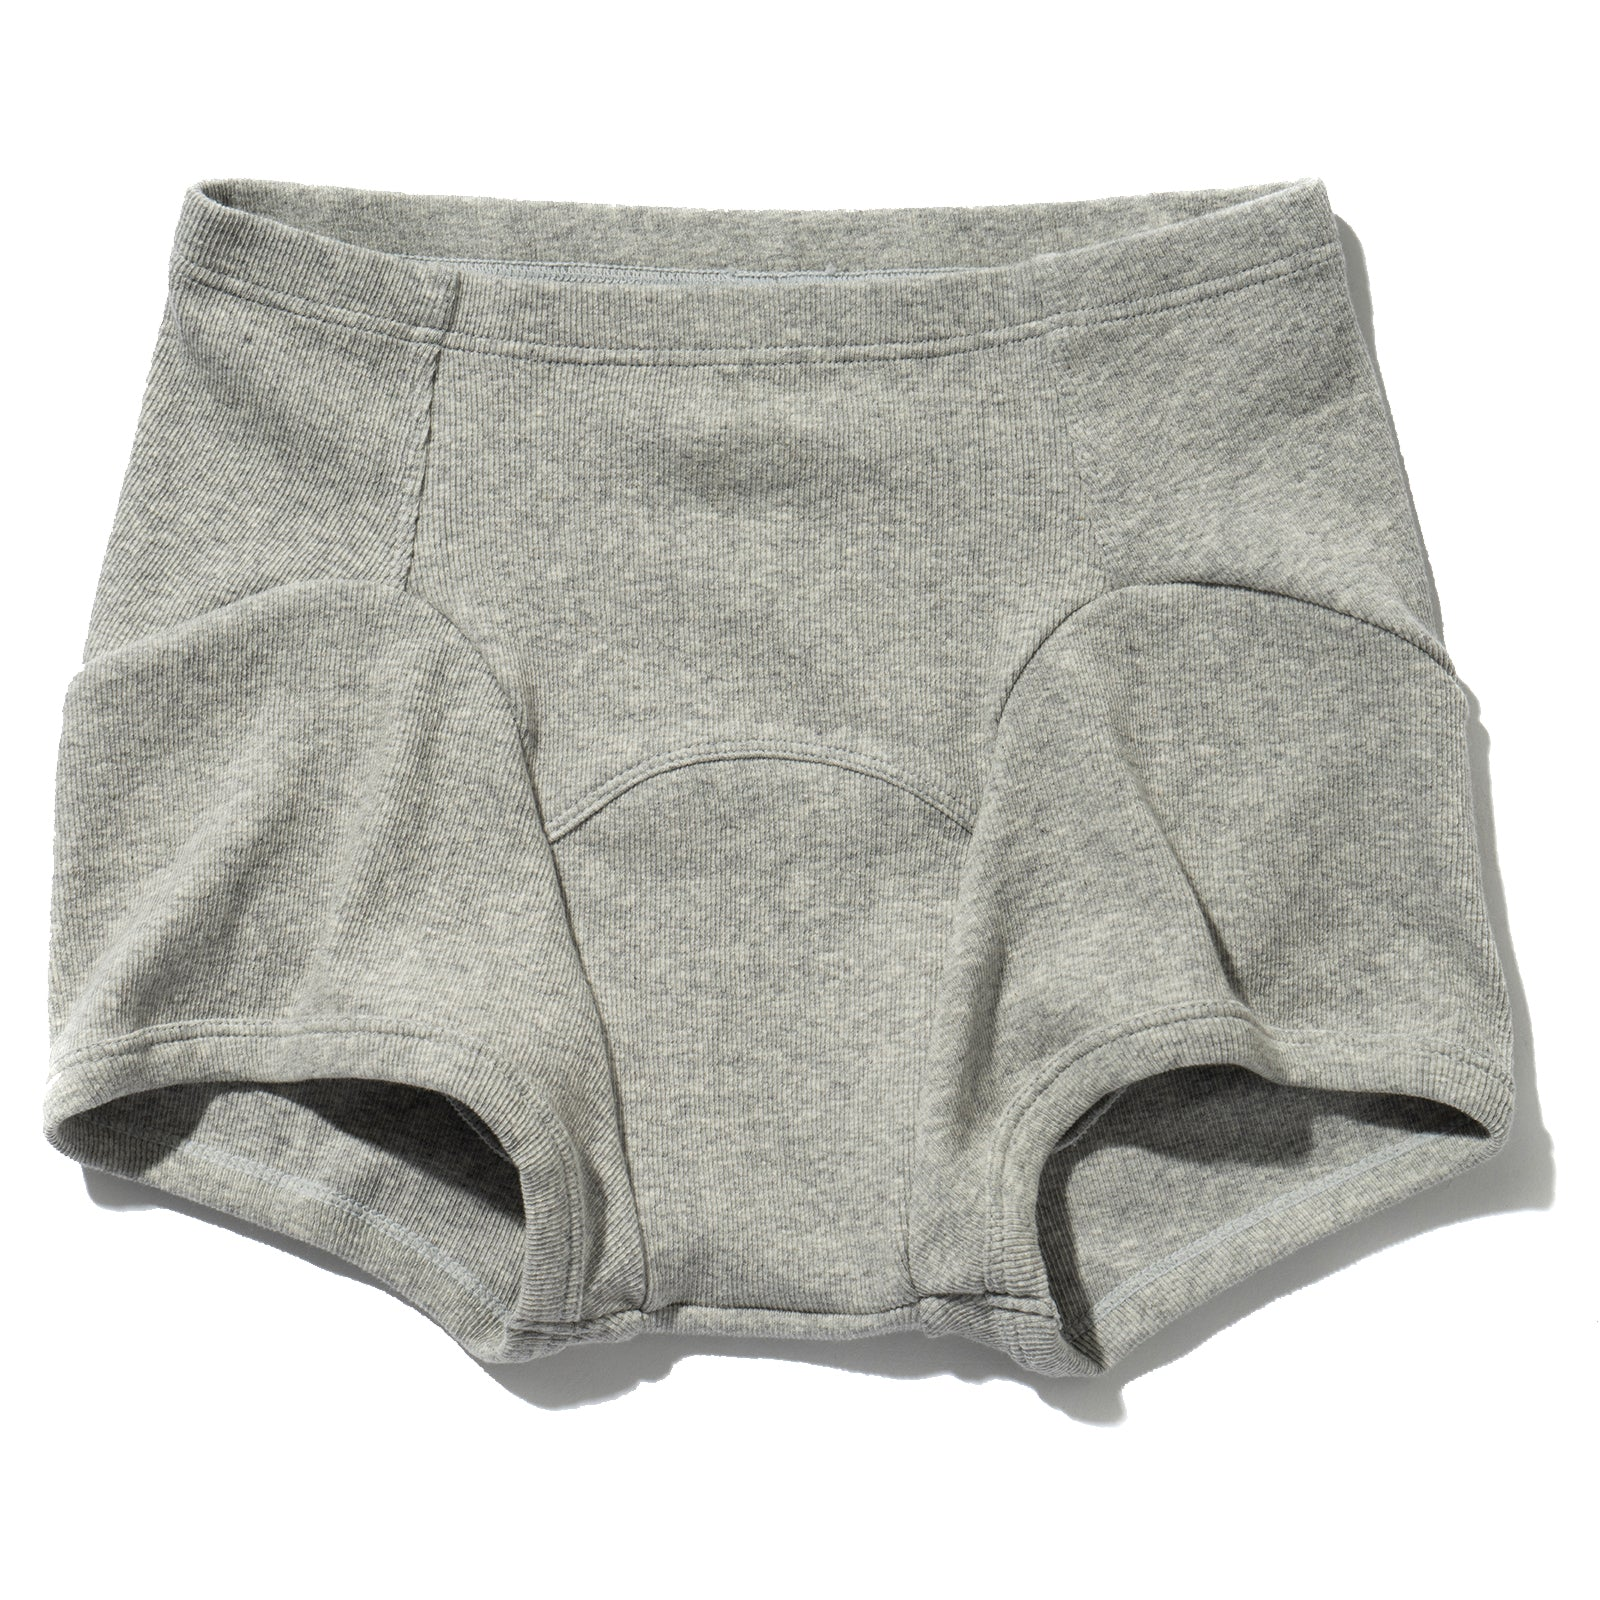 REAL McCOY'S ATHLETIC UNDERWEAR SHORT